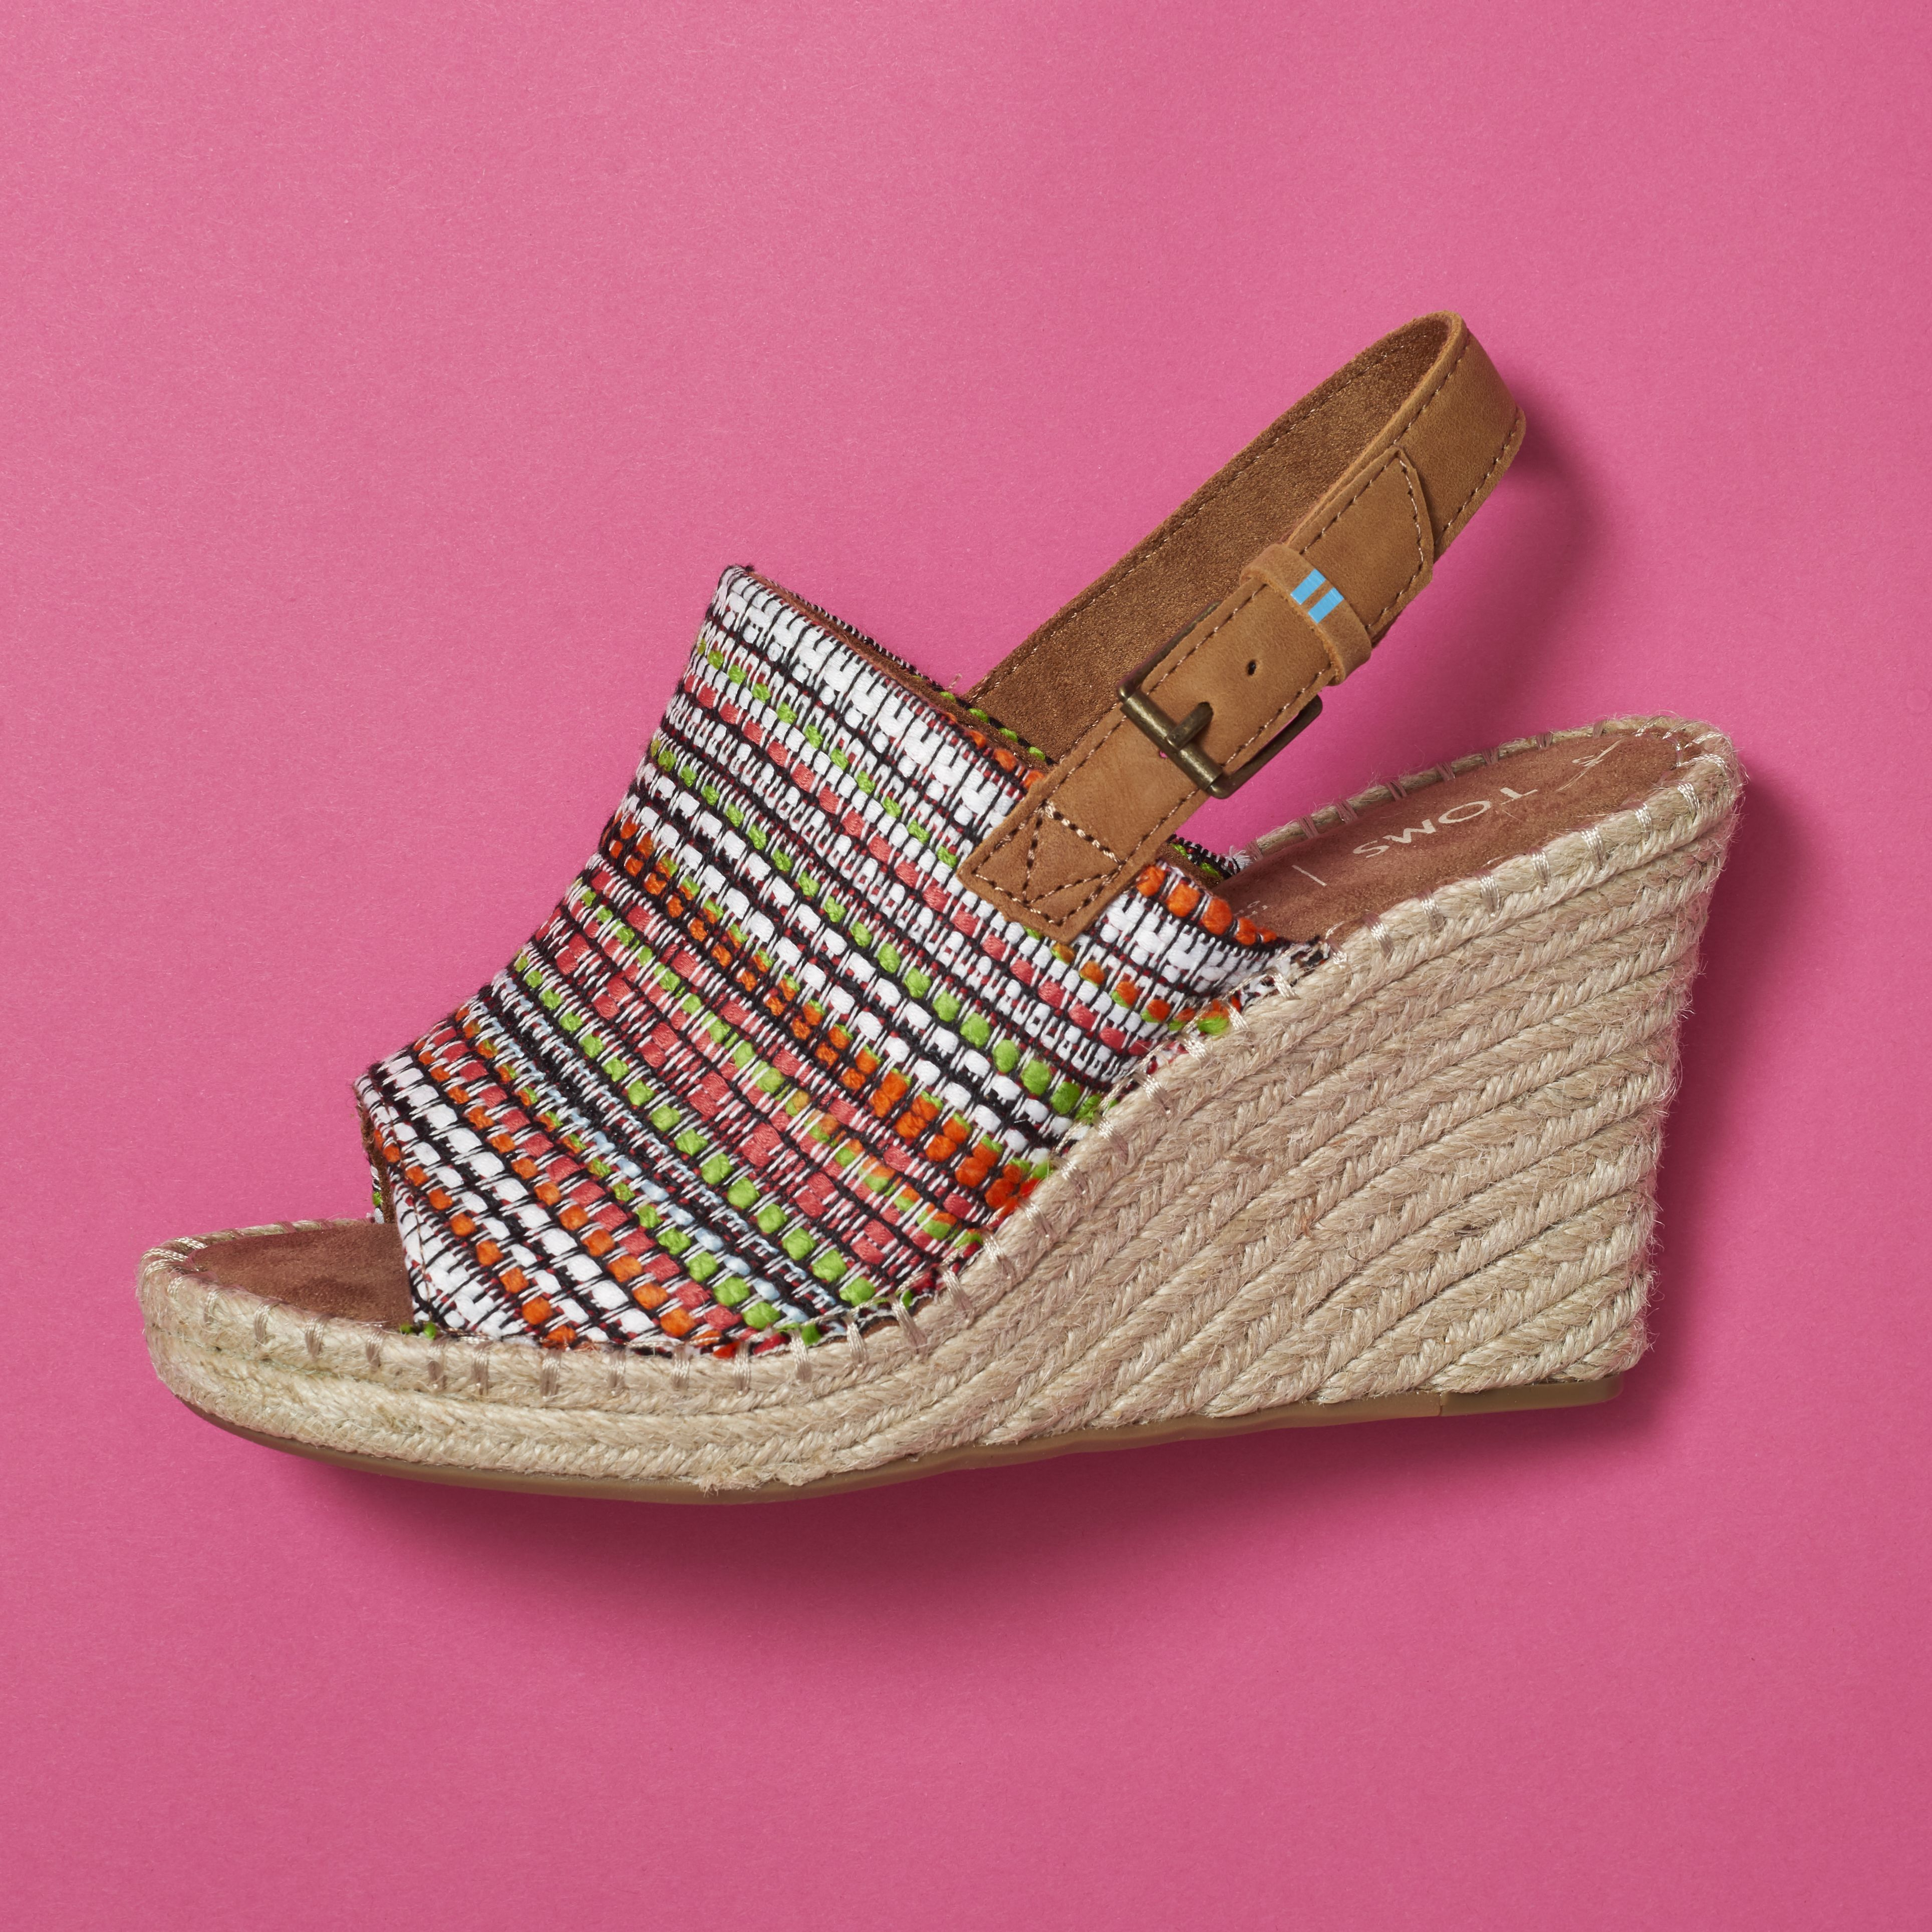 Toms for One, Toms for All! Shop Summer